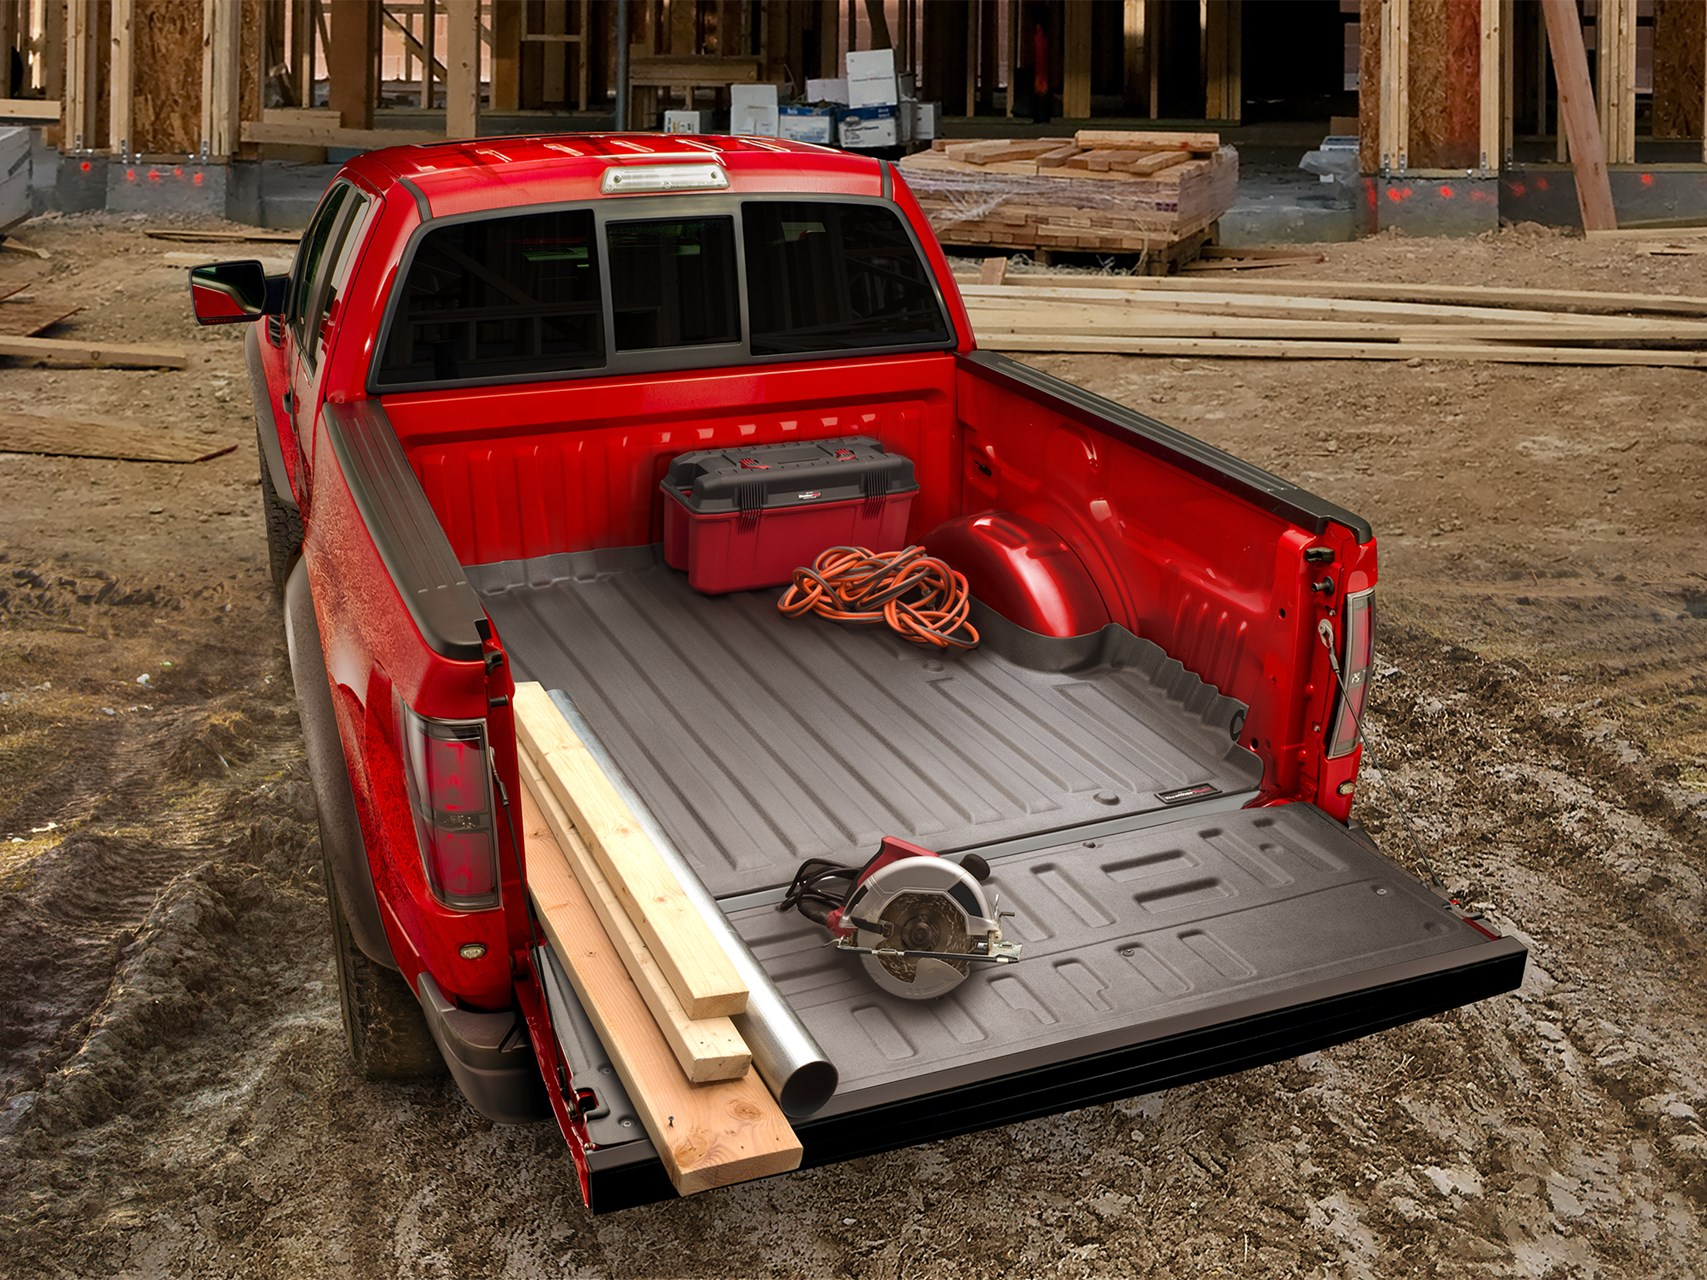 Techliner Bed Liner and Tailgate Protector For Trucks | WeatherTech.com & Techliner Bed Liner and Tailgate Protector For Trucks ... markmcfarlin.com